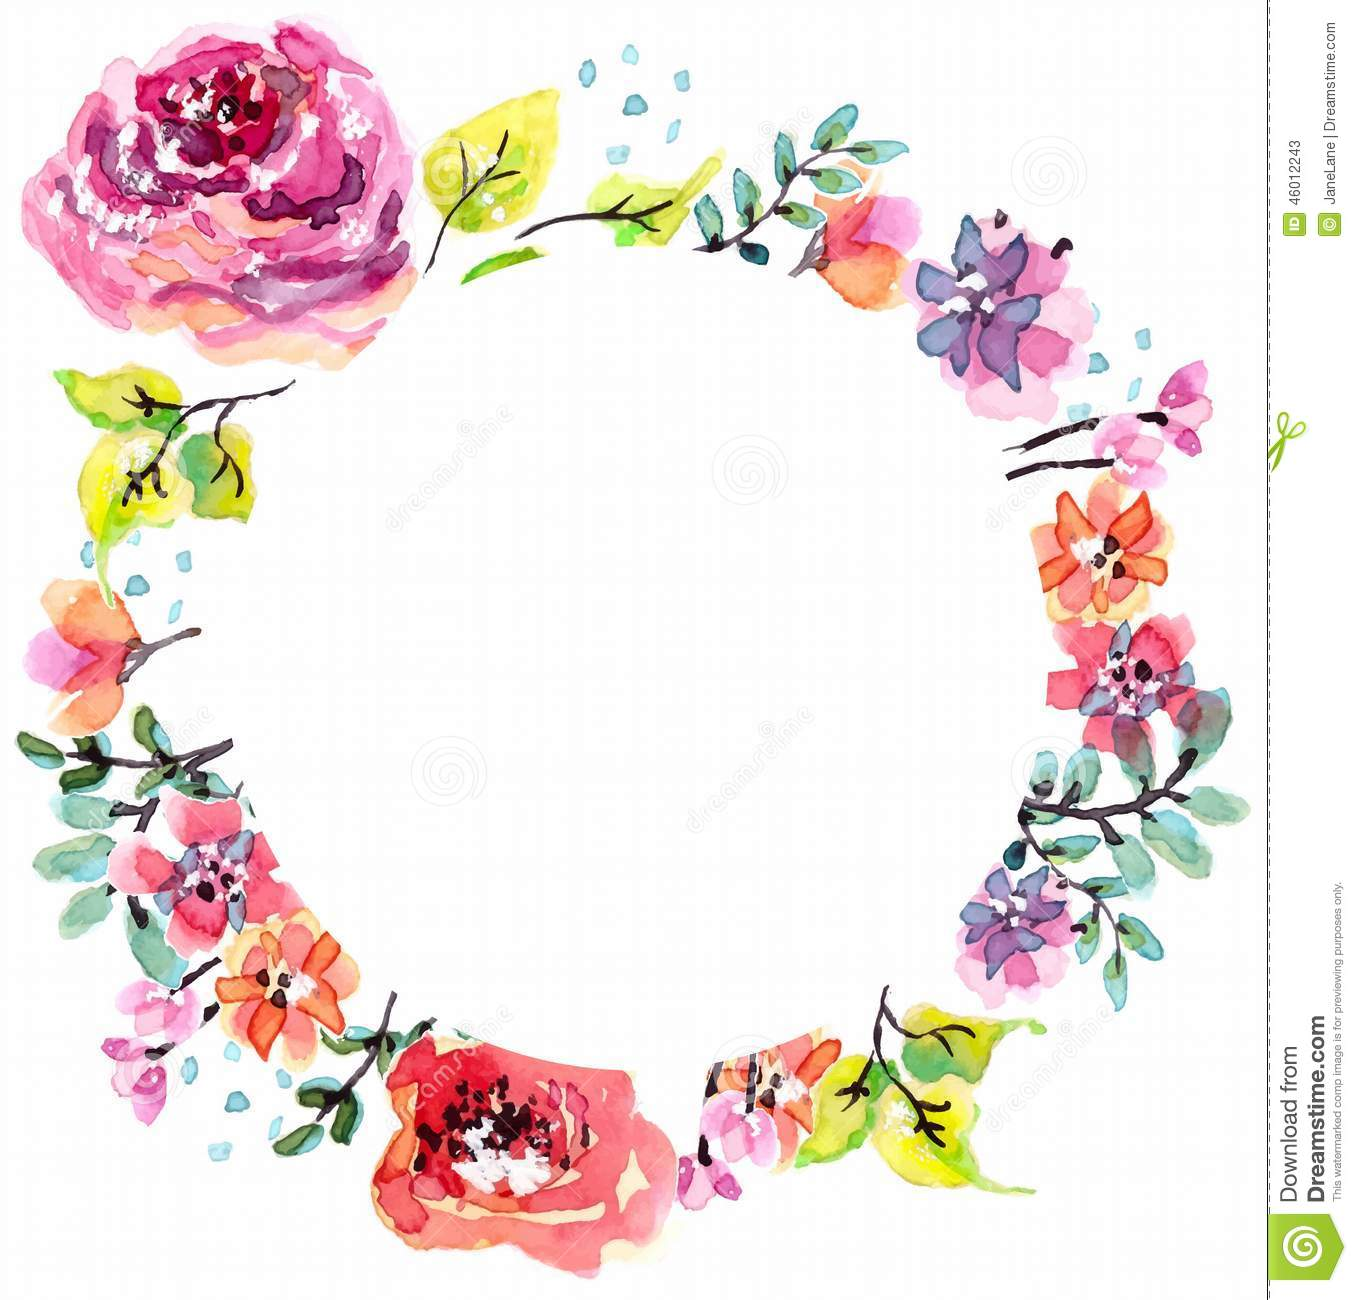 Watercolor Floral Frame Stock Vector - Image: 46012243